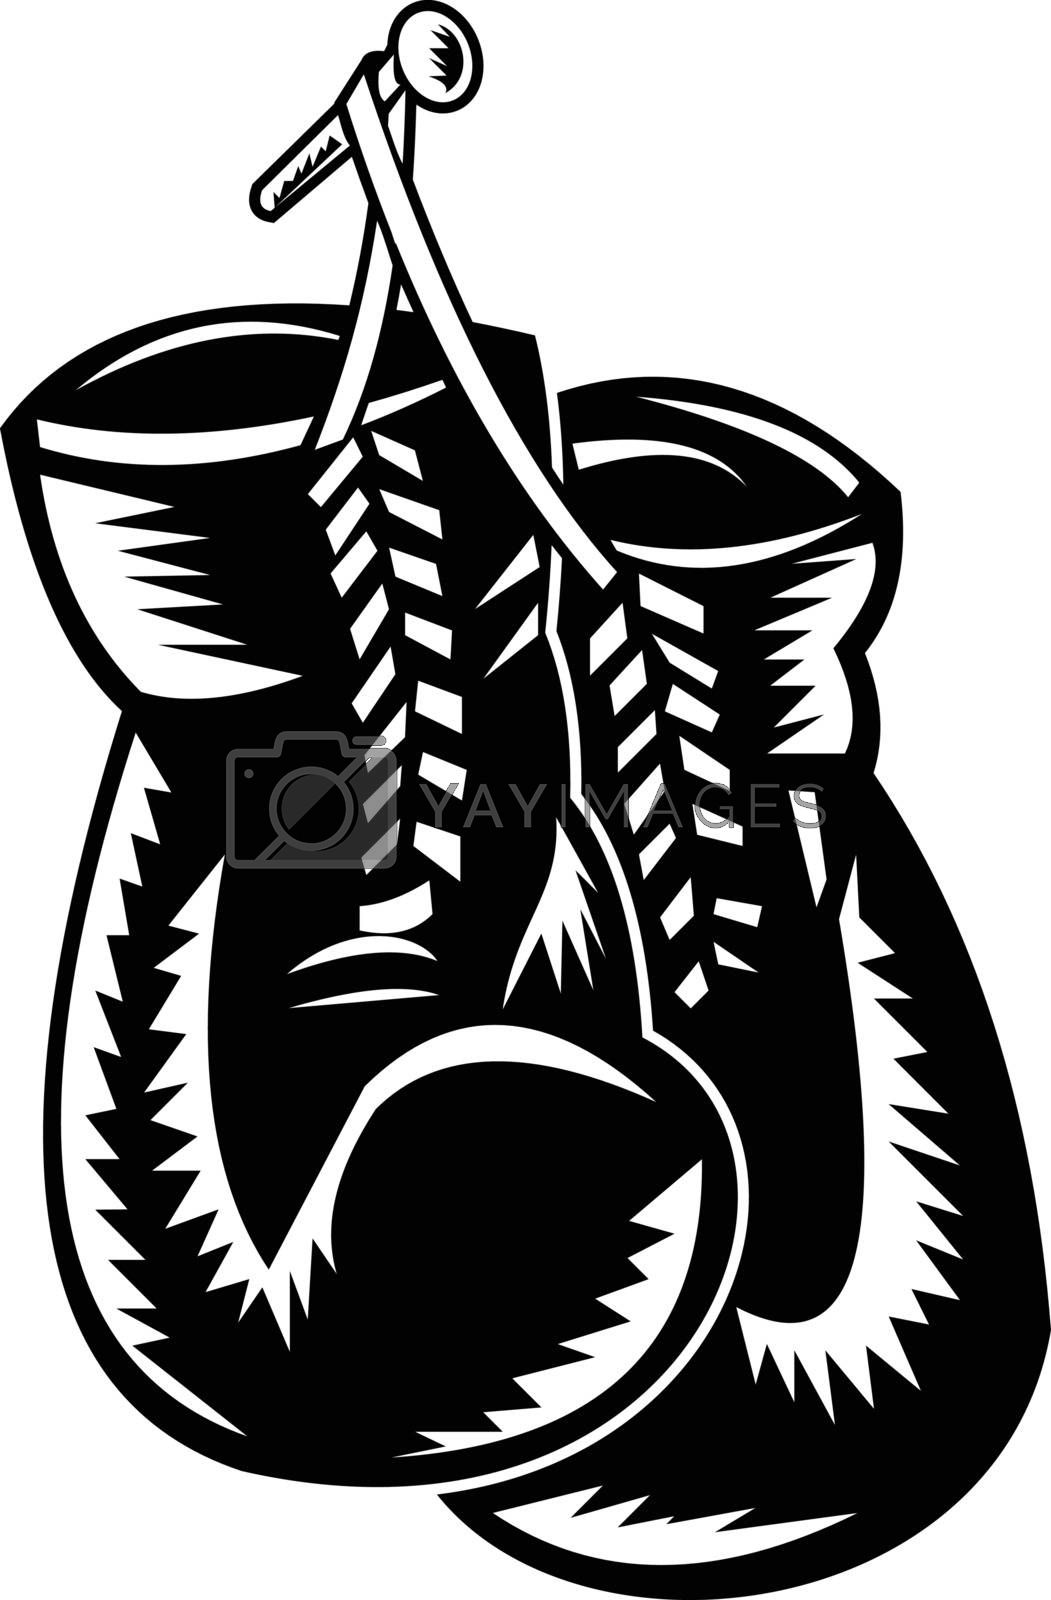 Retro woodcut style illustration of a pair of boxing gloves hanging on nail on isolated background done in black and white.